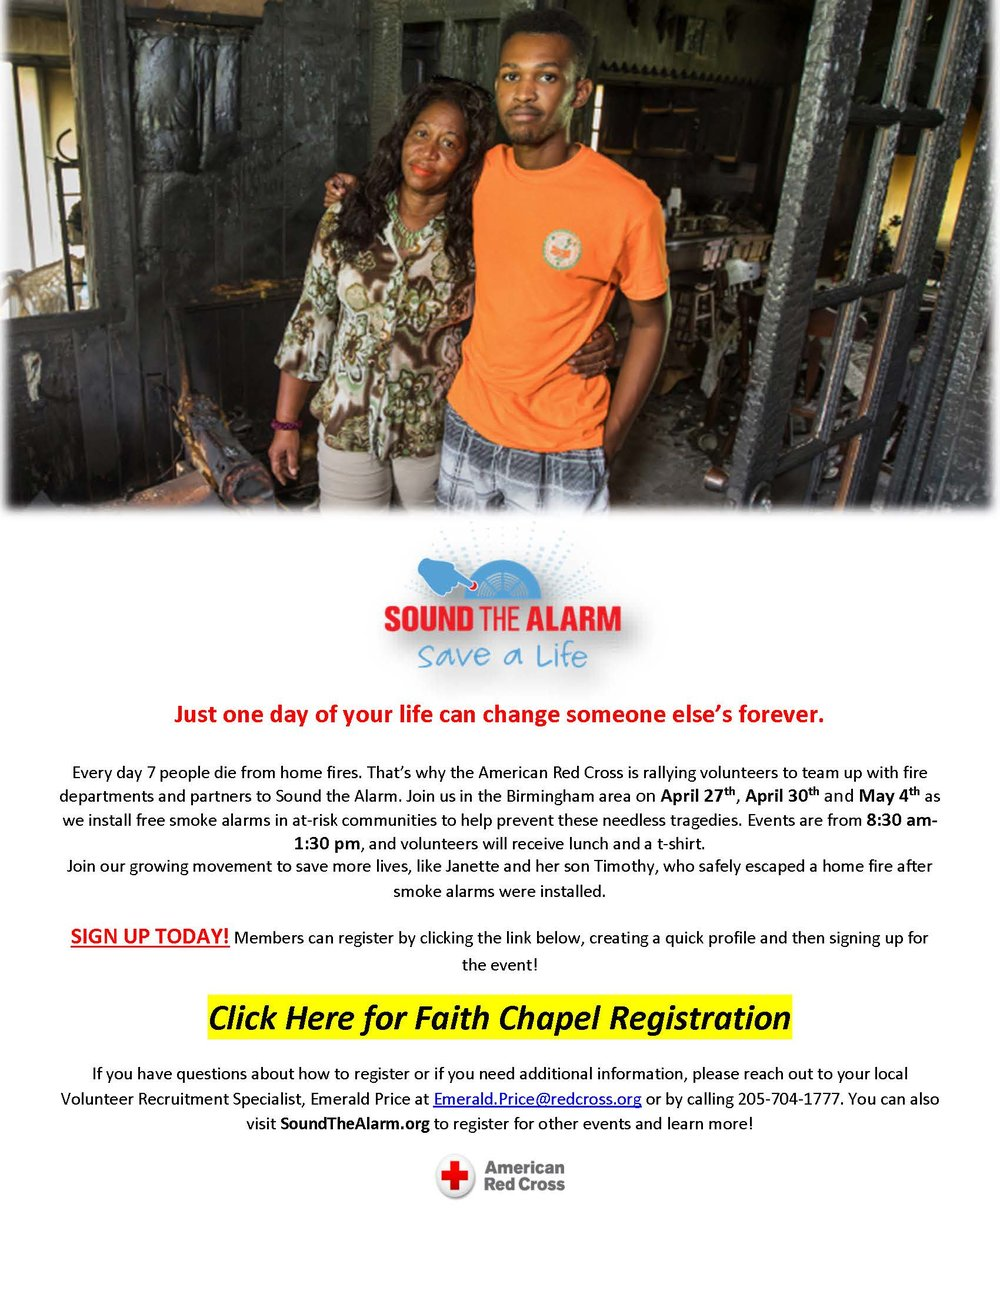 STA Flyer (Faith Chapel Team Link).jpg